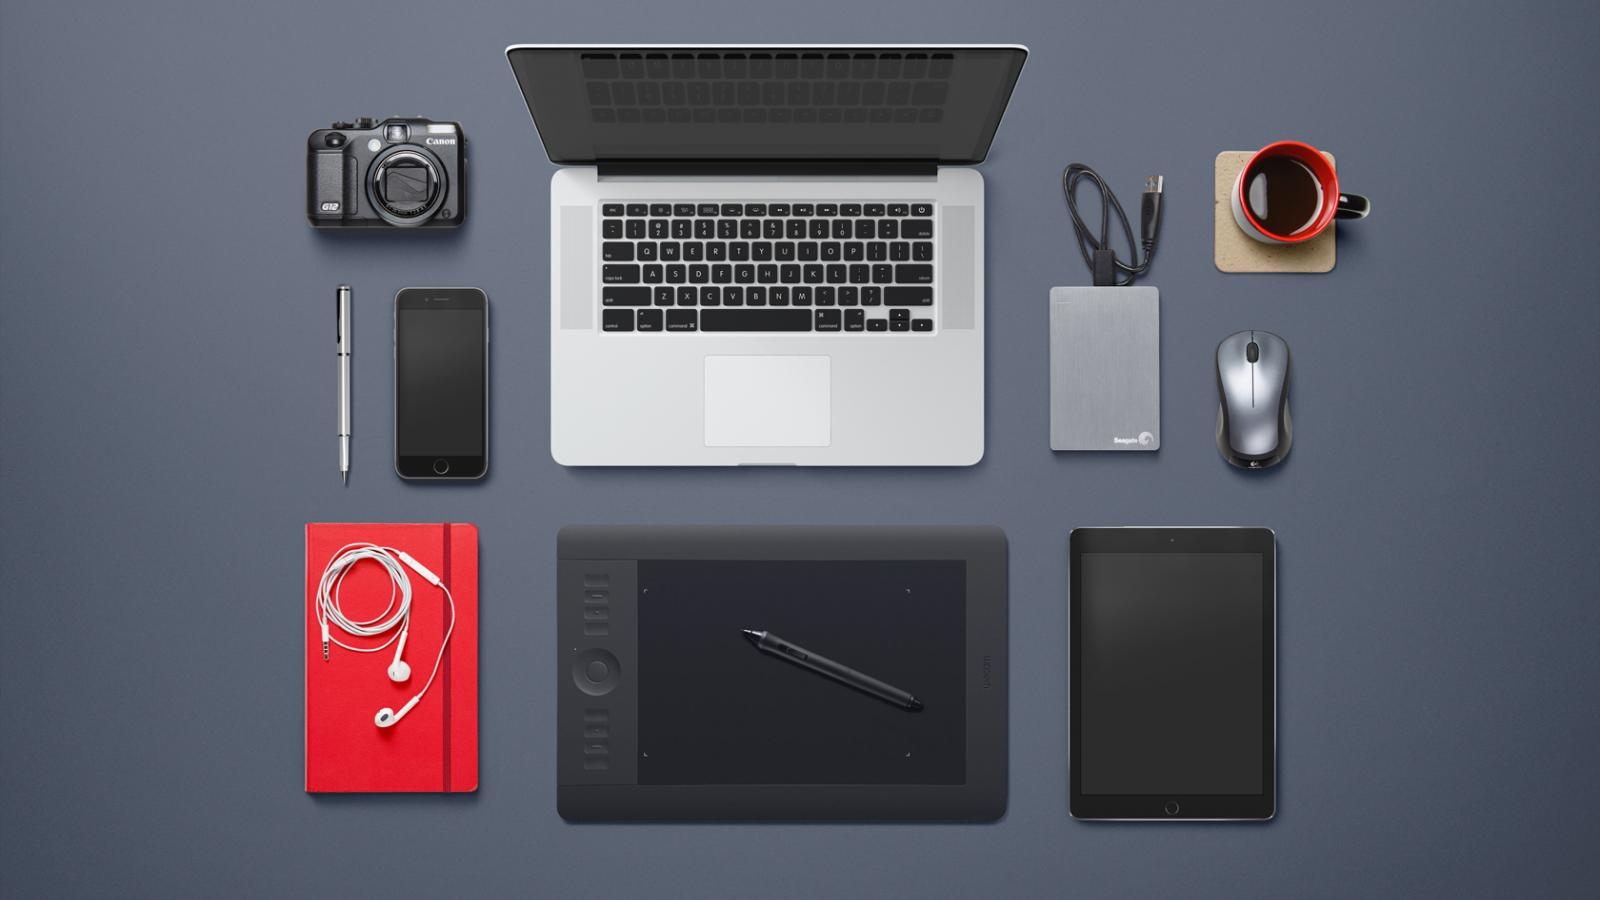 38 Isolated Desk Objects - Download